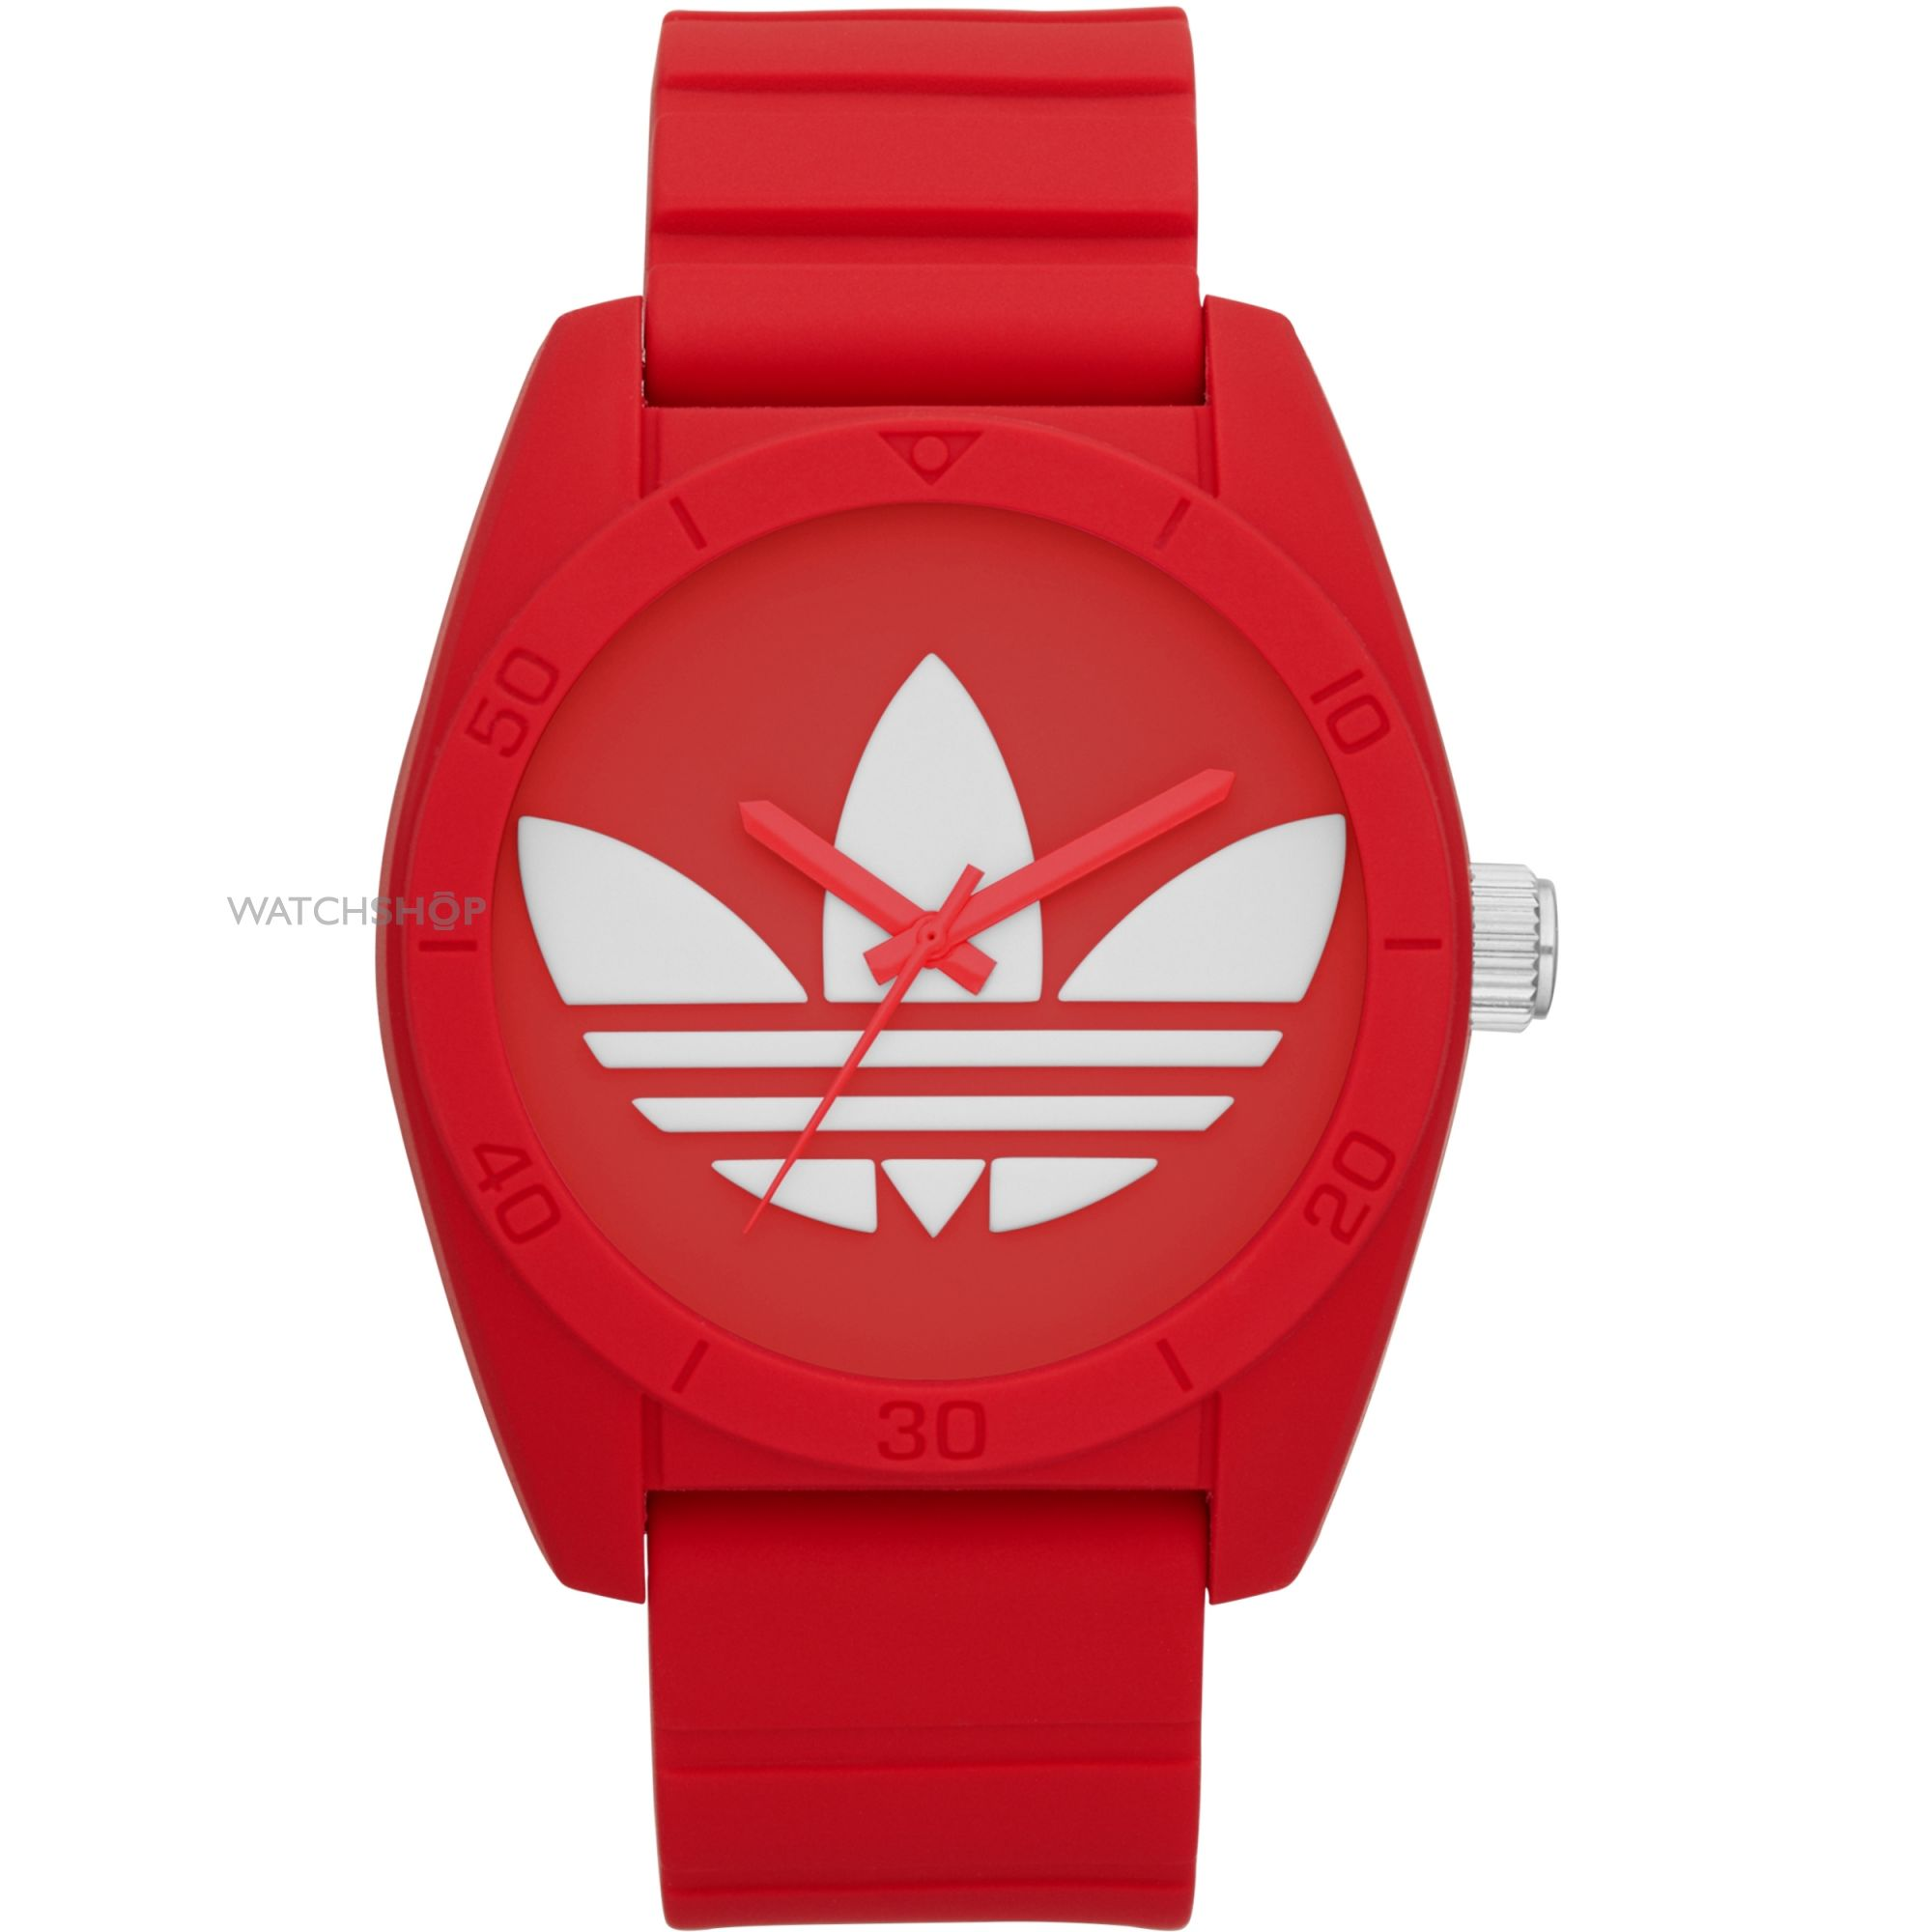 adidas d watch watches football red v online shop buy